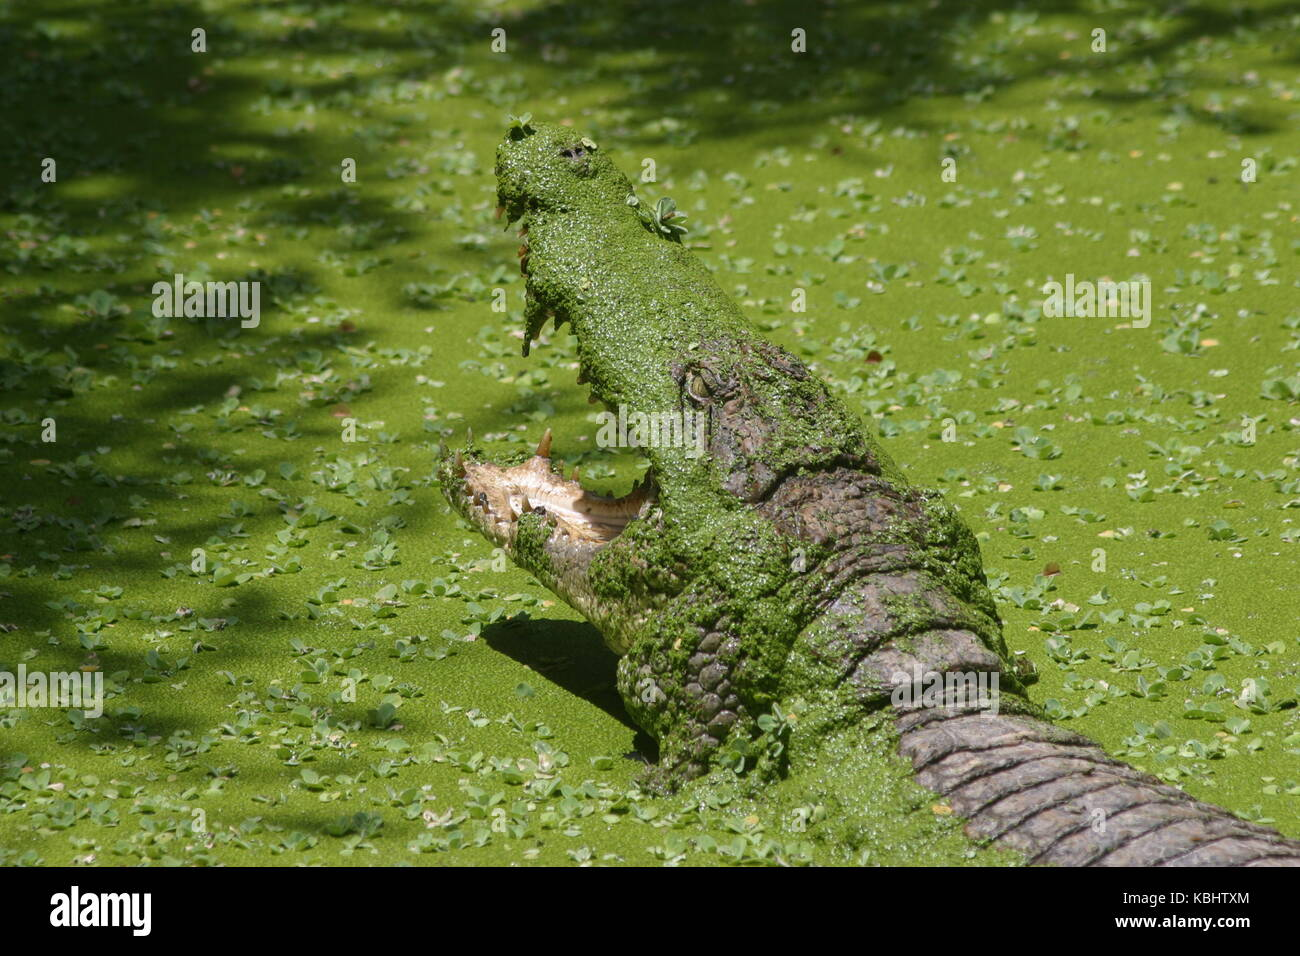 Krokodil mit offenem Maul - Crocodile with open mouth - Stock Image